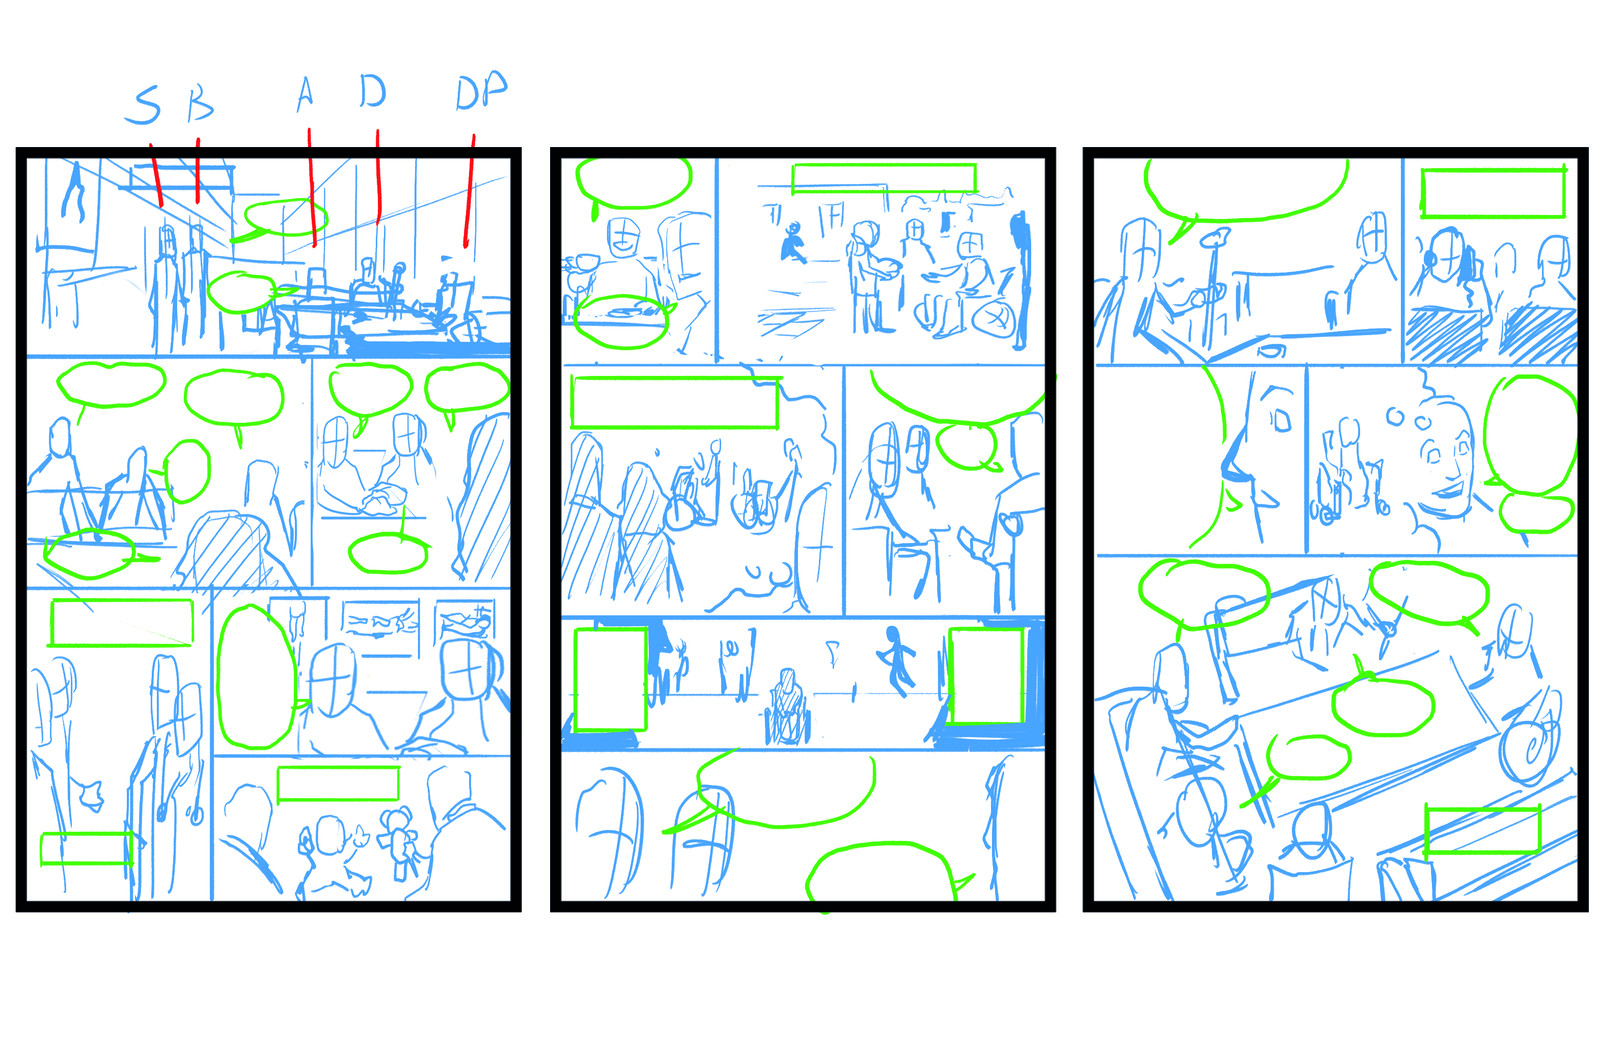 Story 2 - Roughs